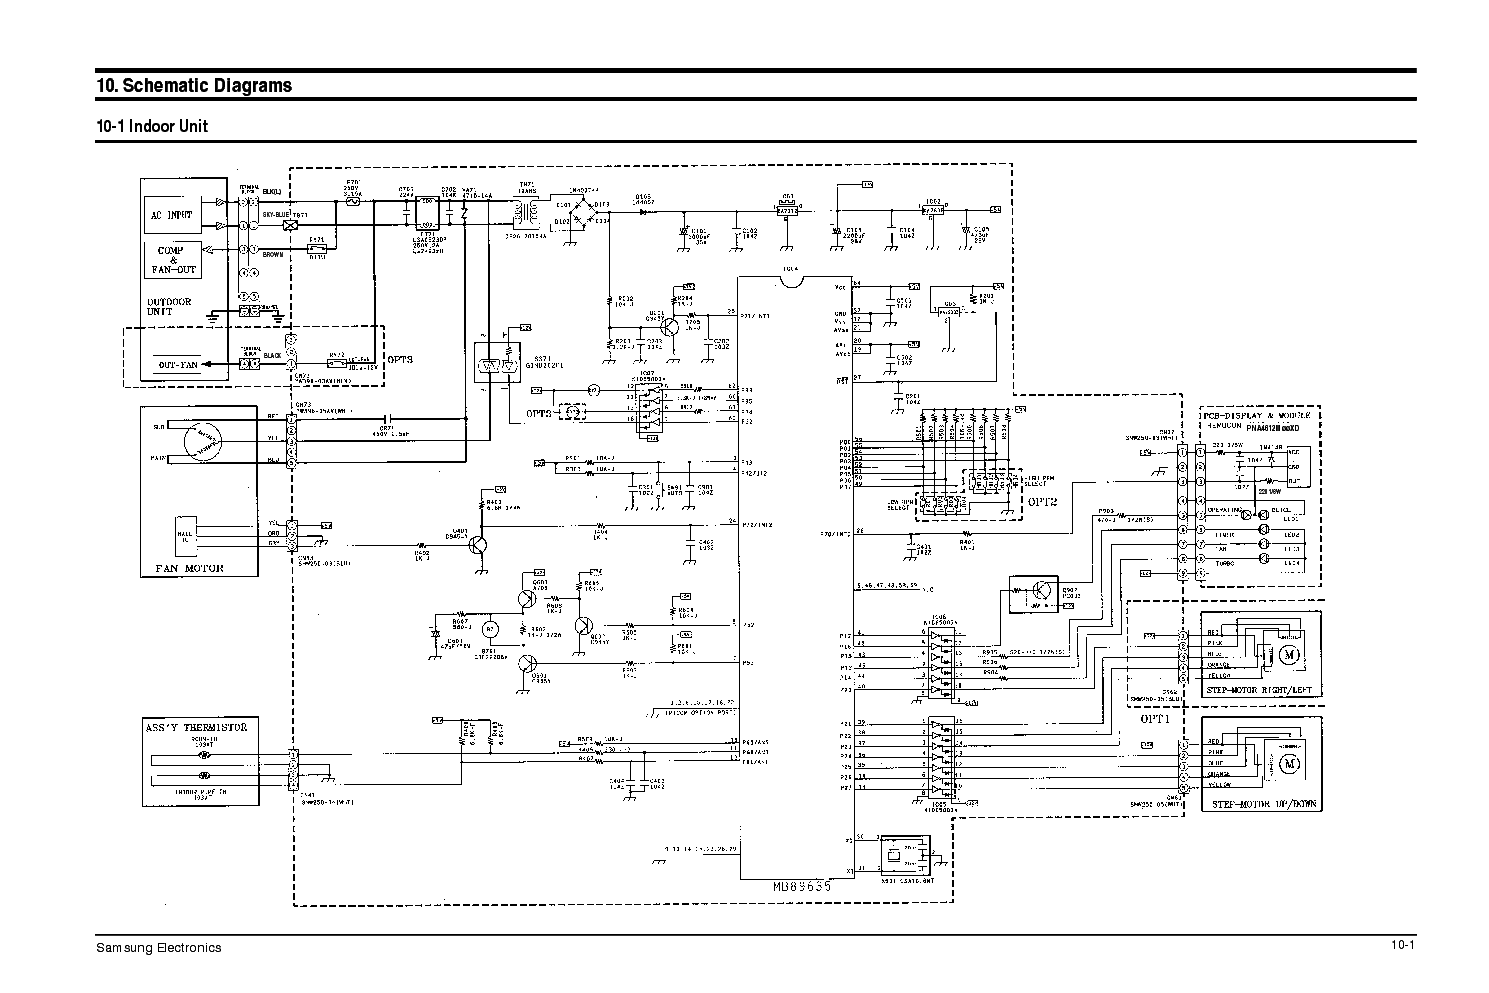 SAMSUNG SRS 2029C Service Manual free download, schematics